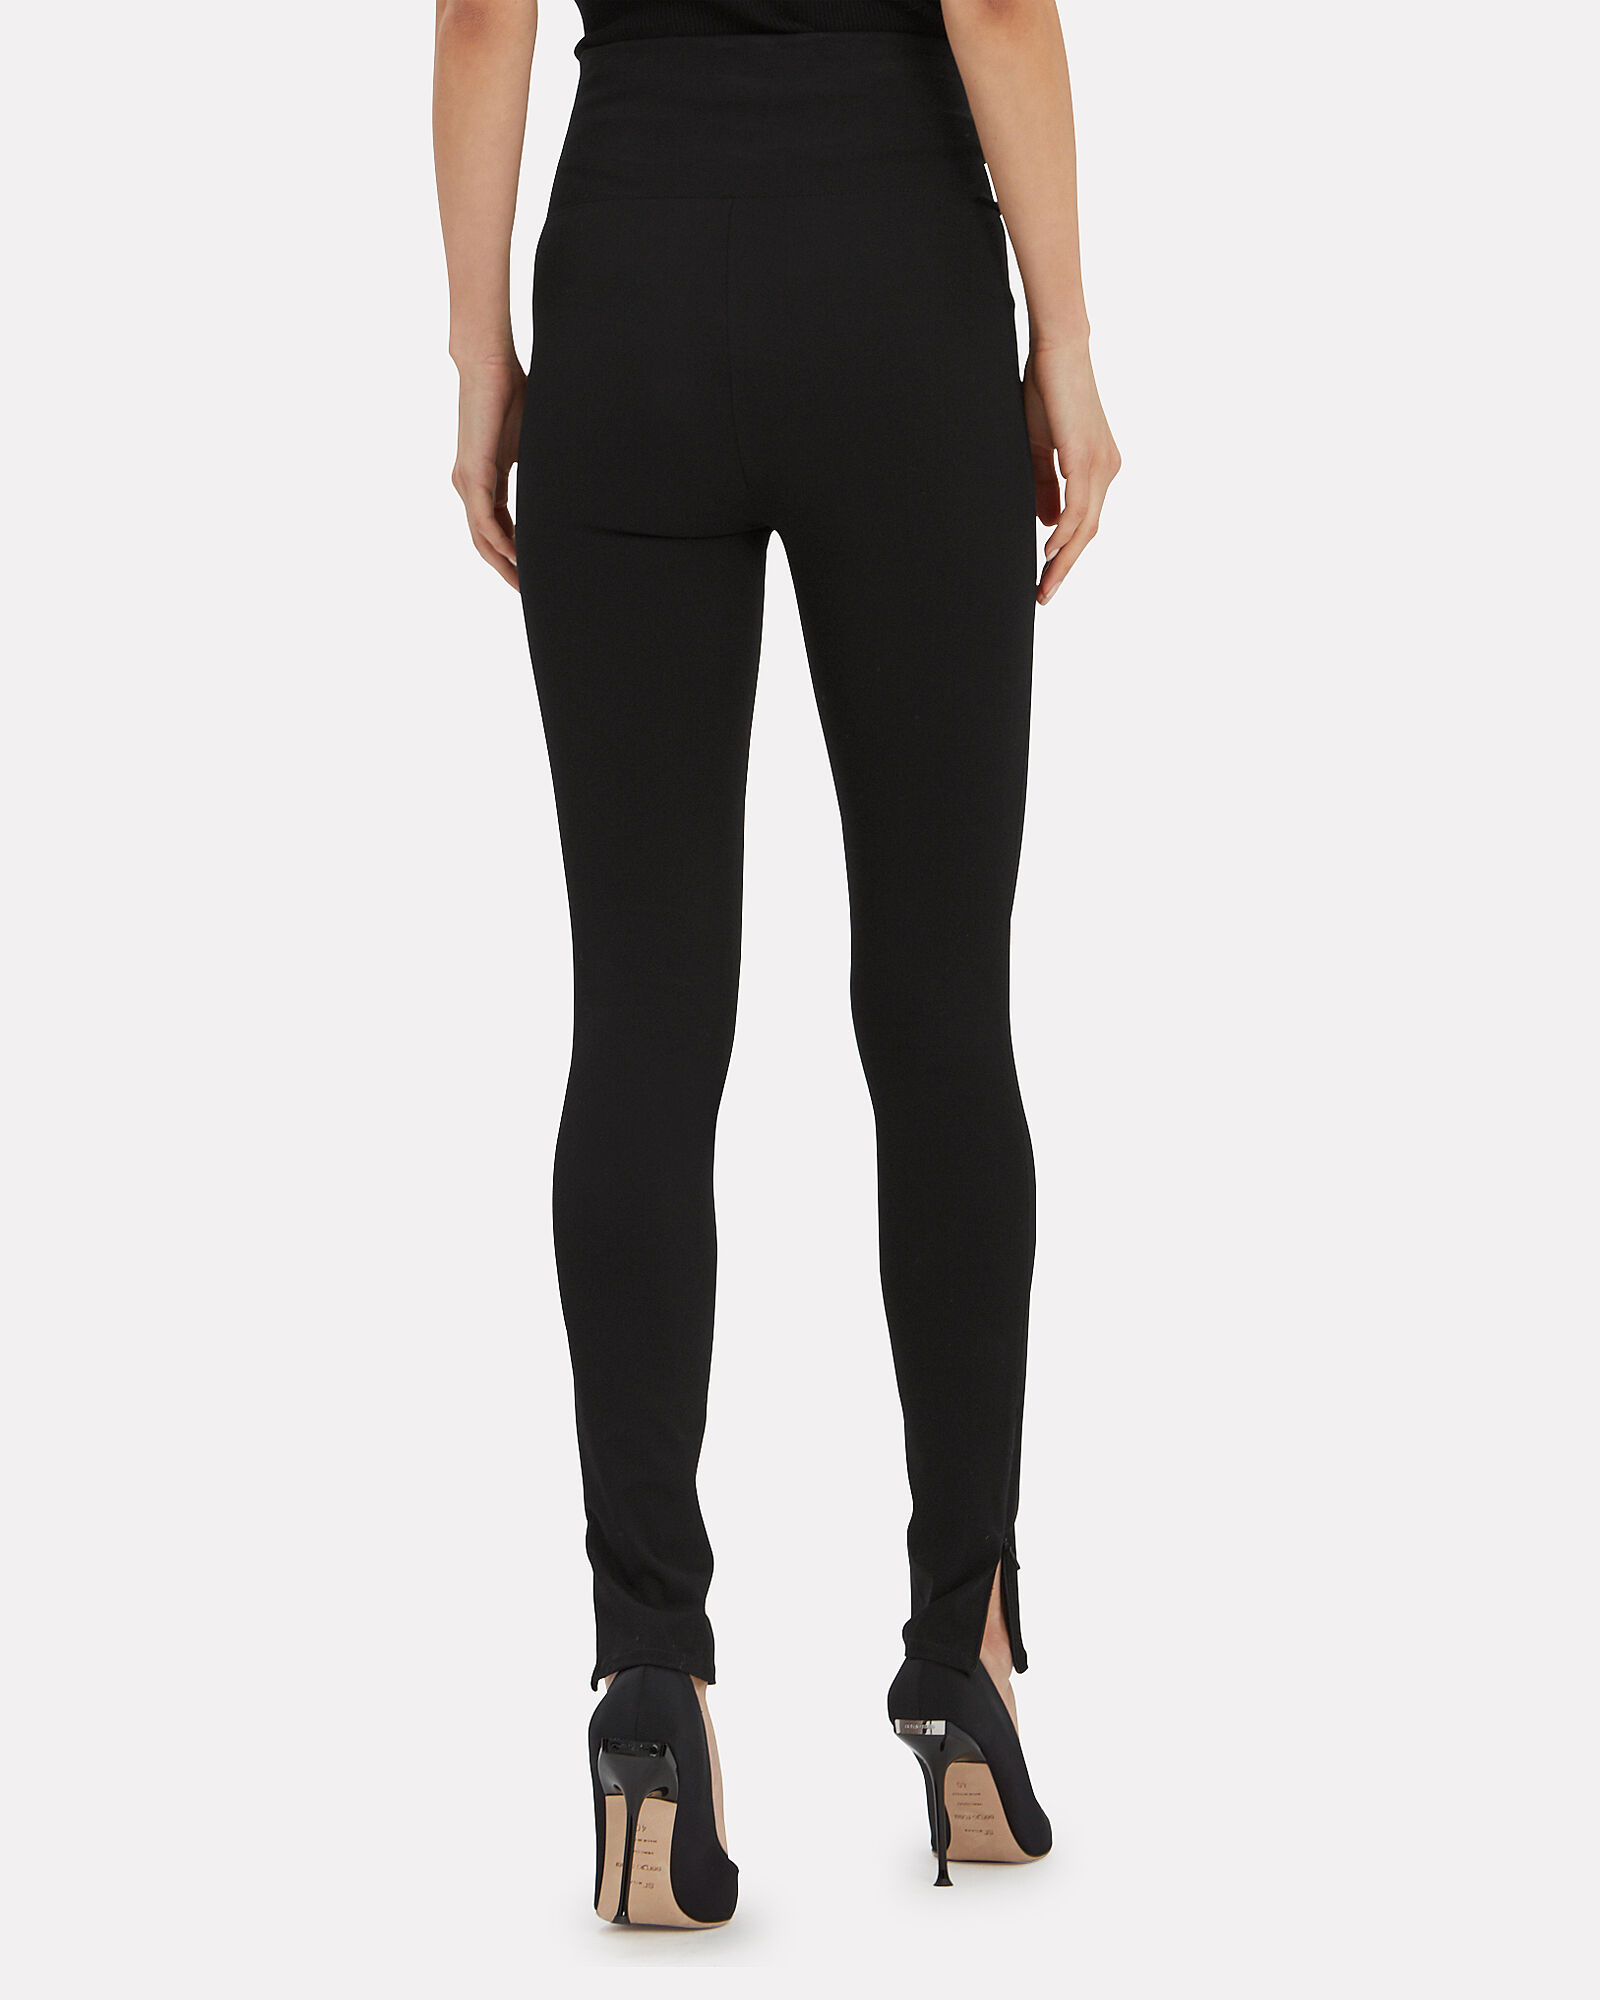 Reflex Zip Leggings, BLACK, hi-res